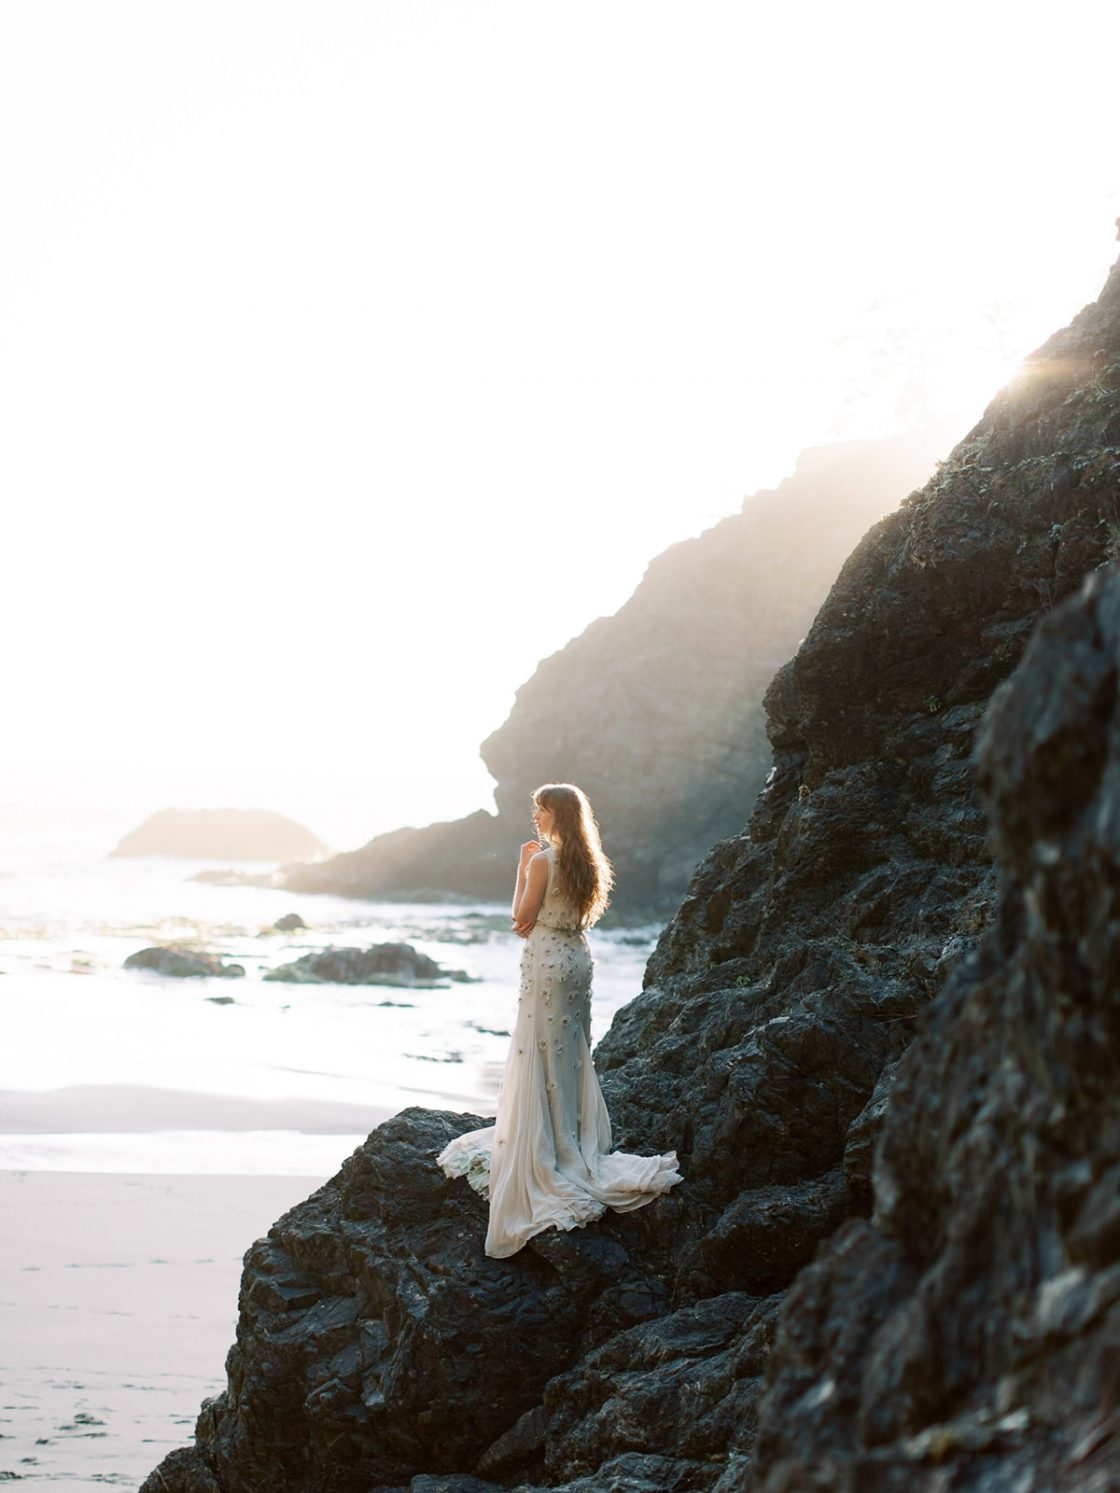 Pacific Ocean Sea Inspired Wedding by Sean Smith Photography 4